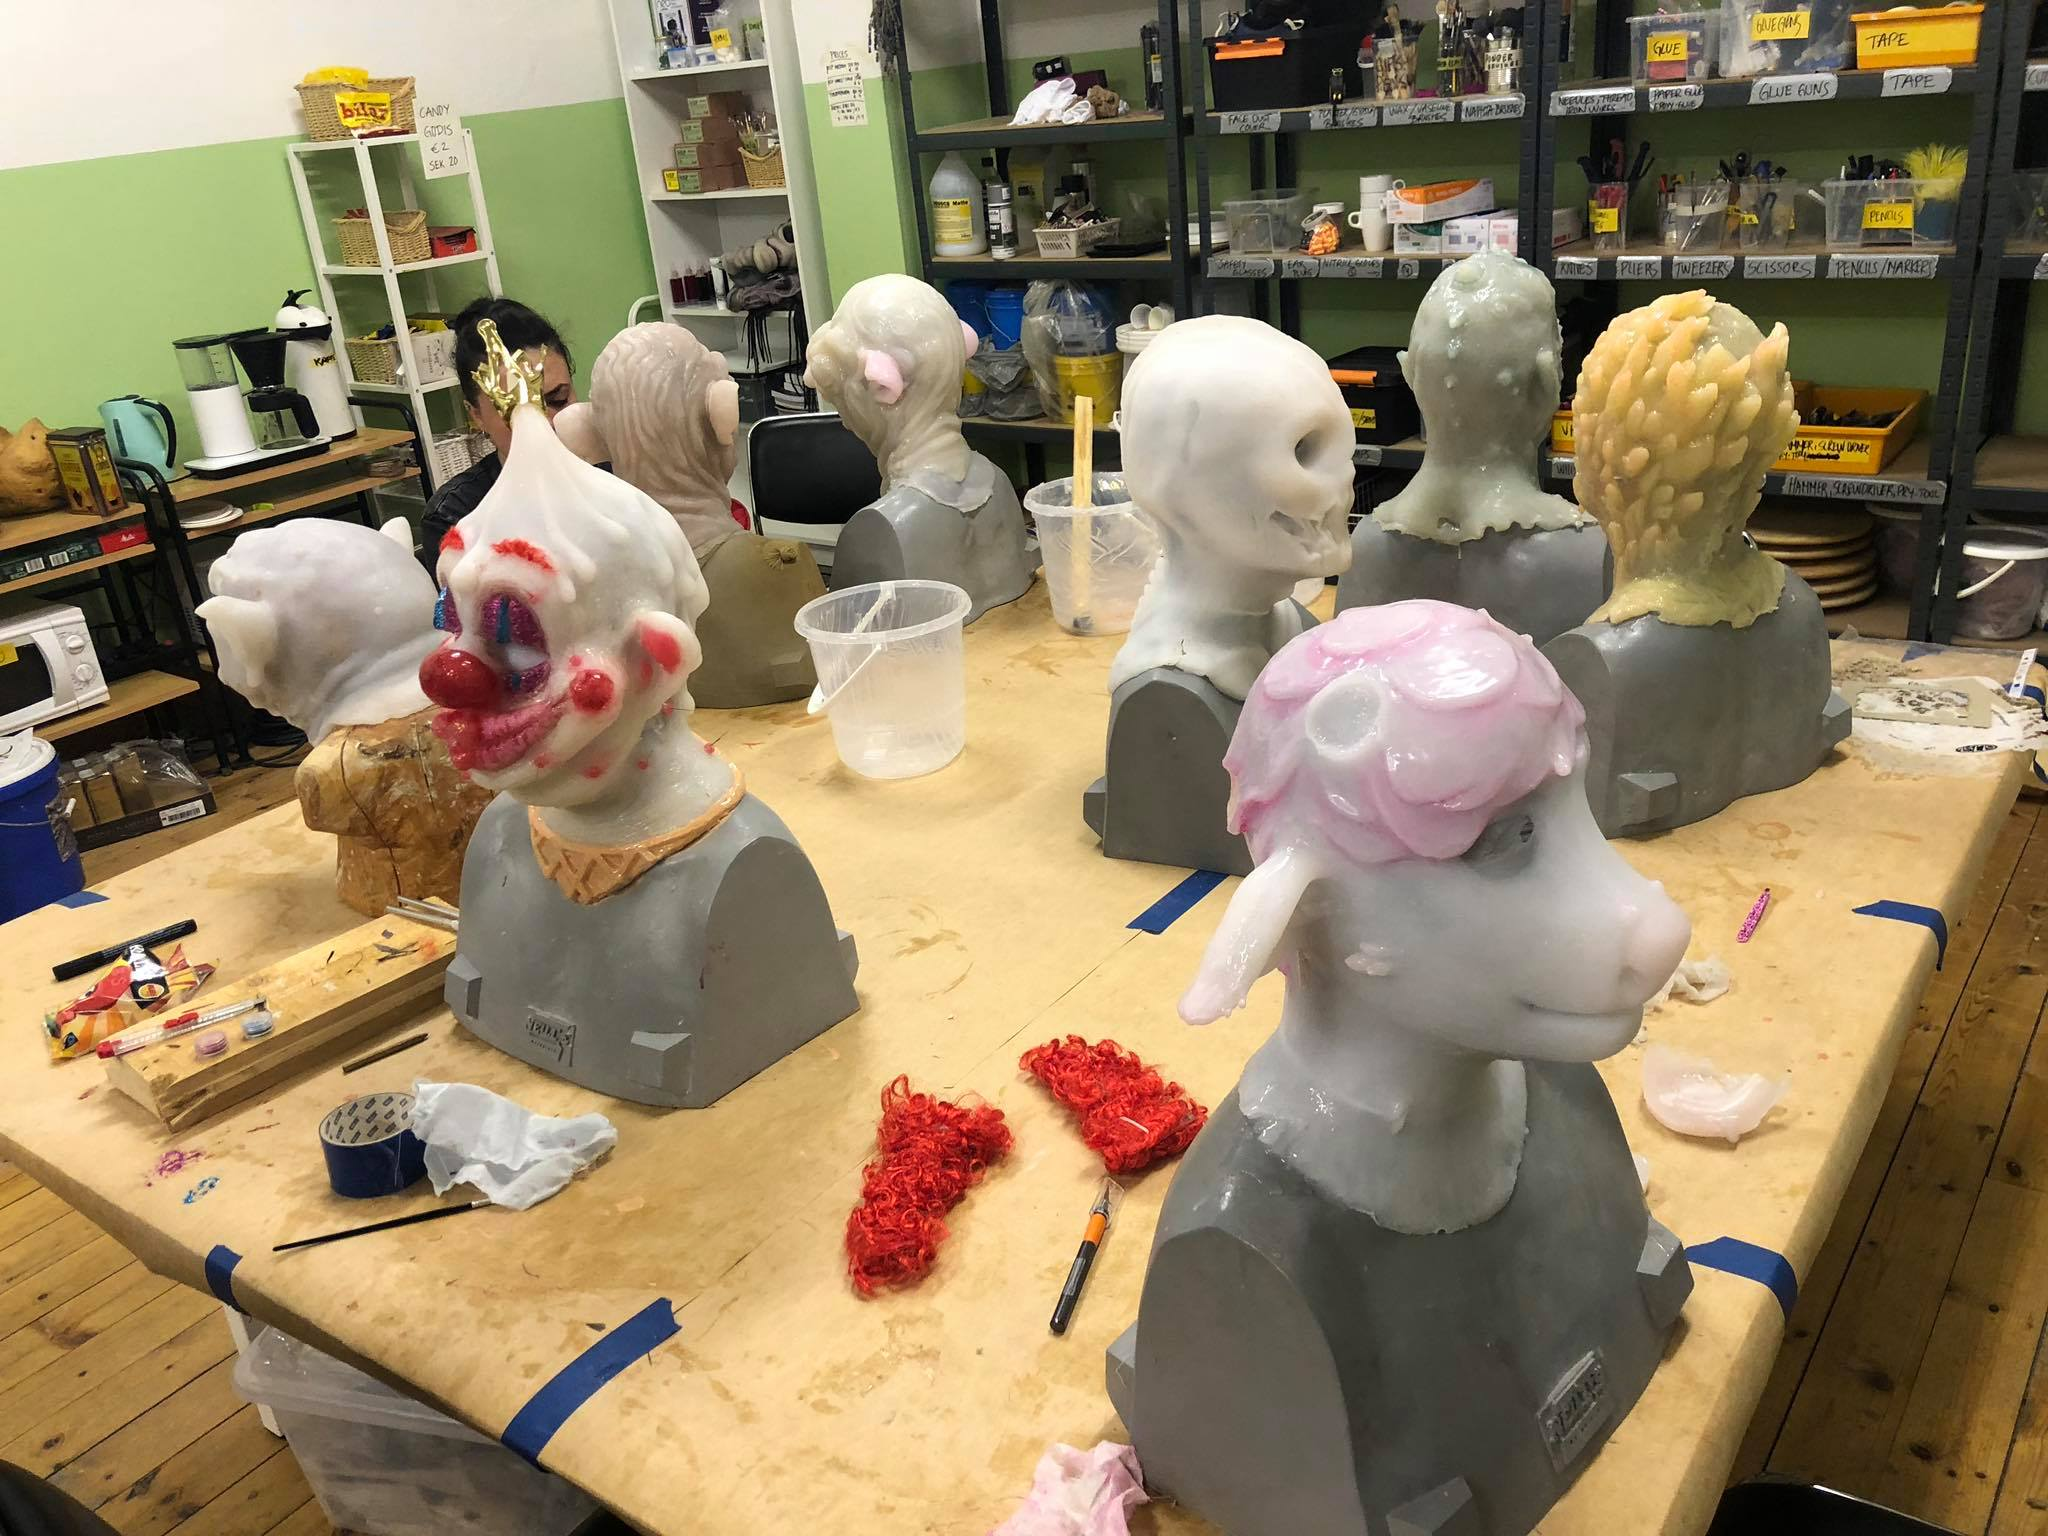 Students working on painting their silicone masks they've created during the 10-day mask making workshop